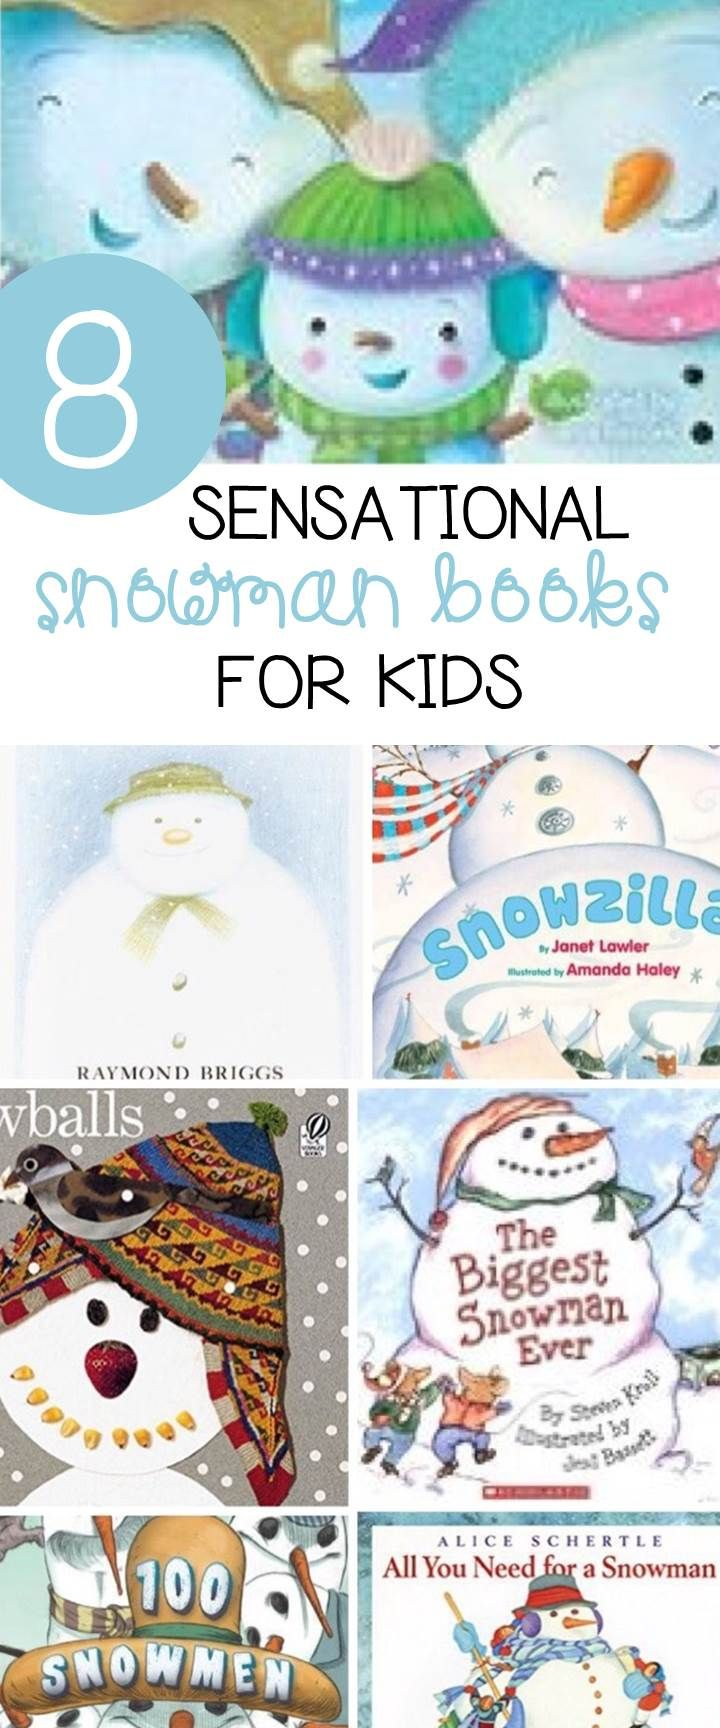 444 best awesome books images on pinterest books for kids kid